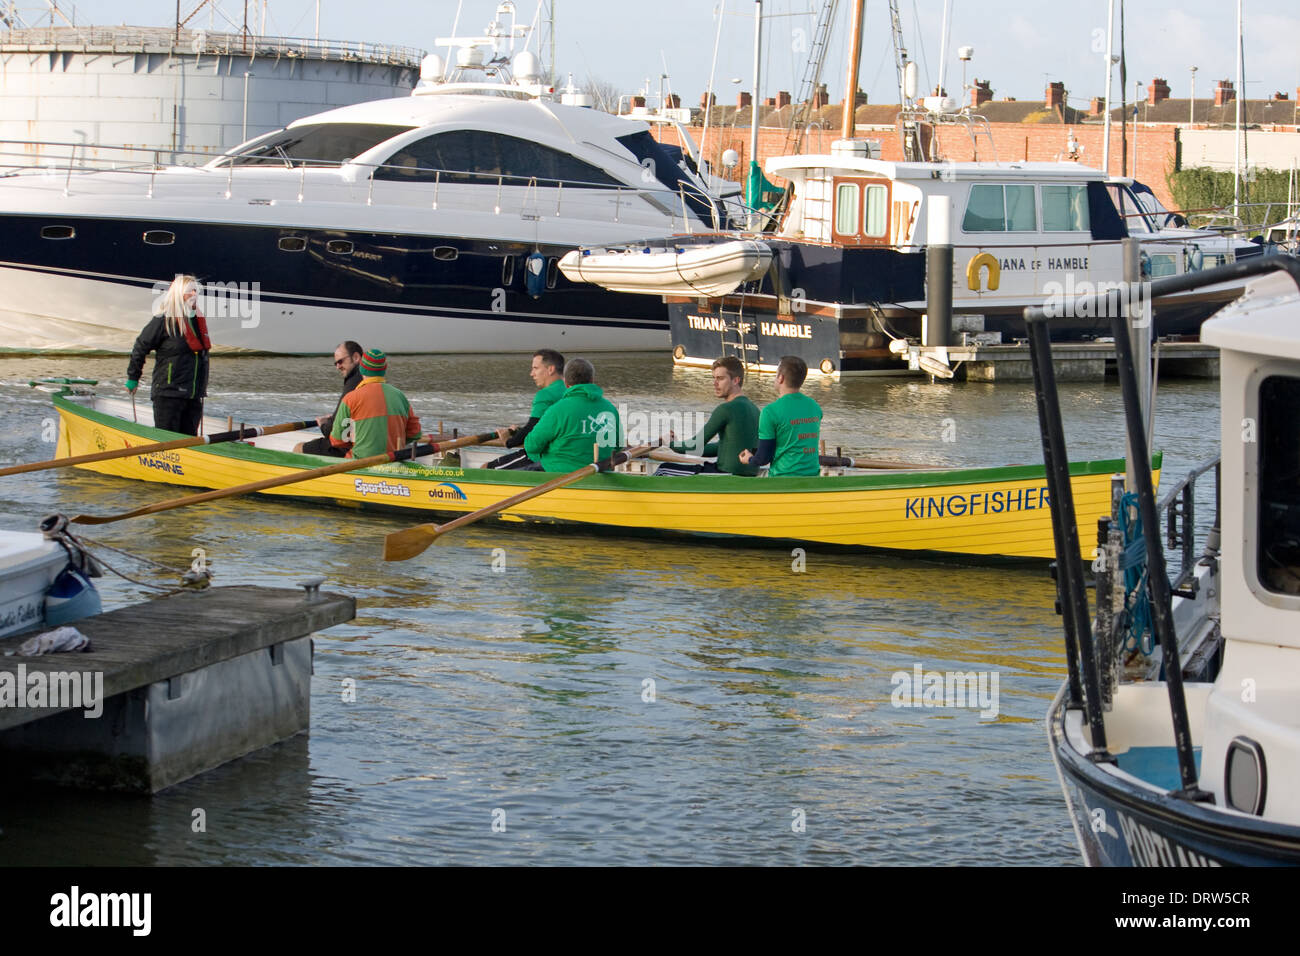 Gig boat with crew in Weymouth's inner harbour. - Stock Image